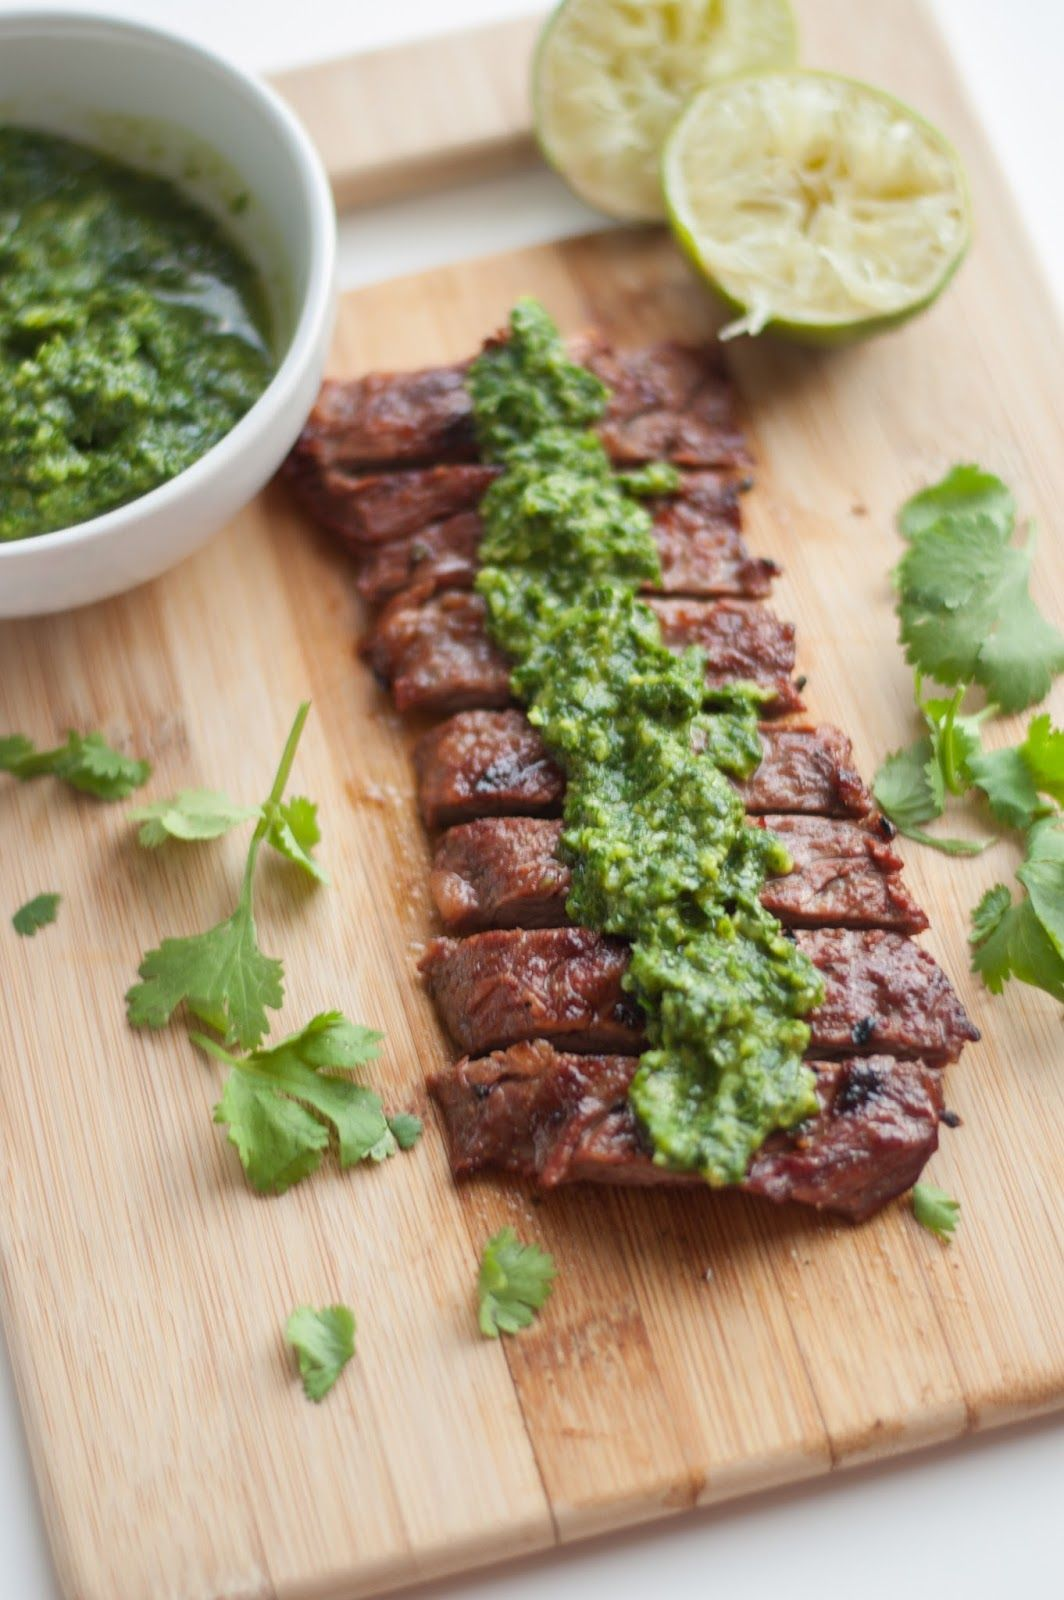 Mouthwatering Cilantro Lime Skirt Steak with Chimichurri